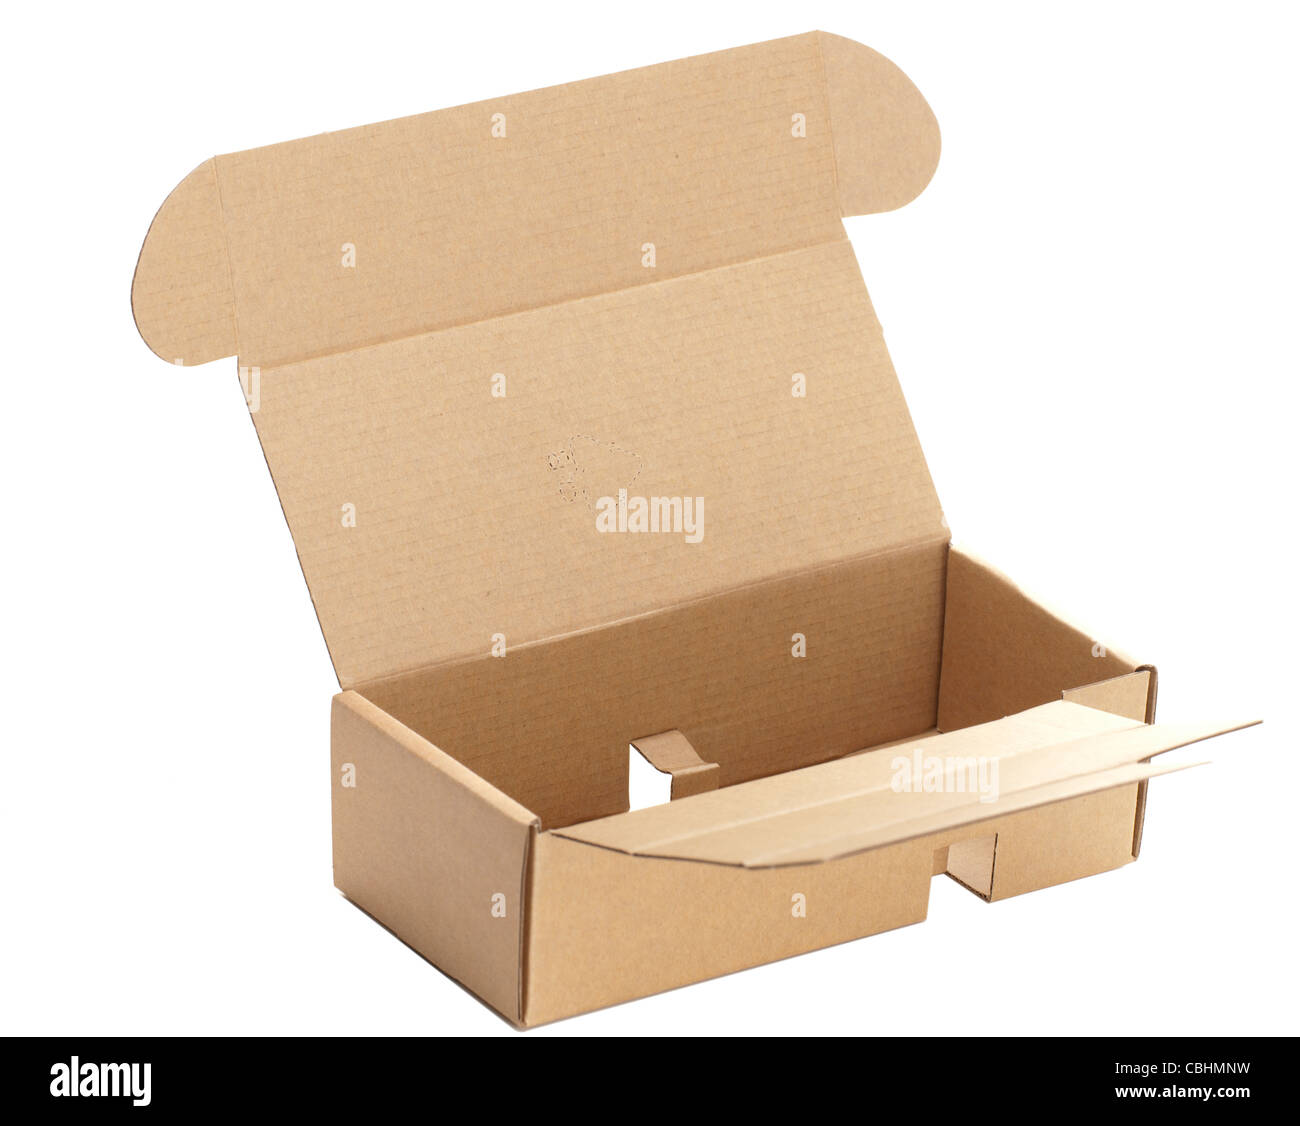 Small cardboard component packing box - Stock Image